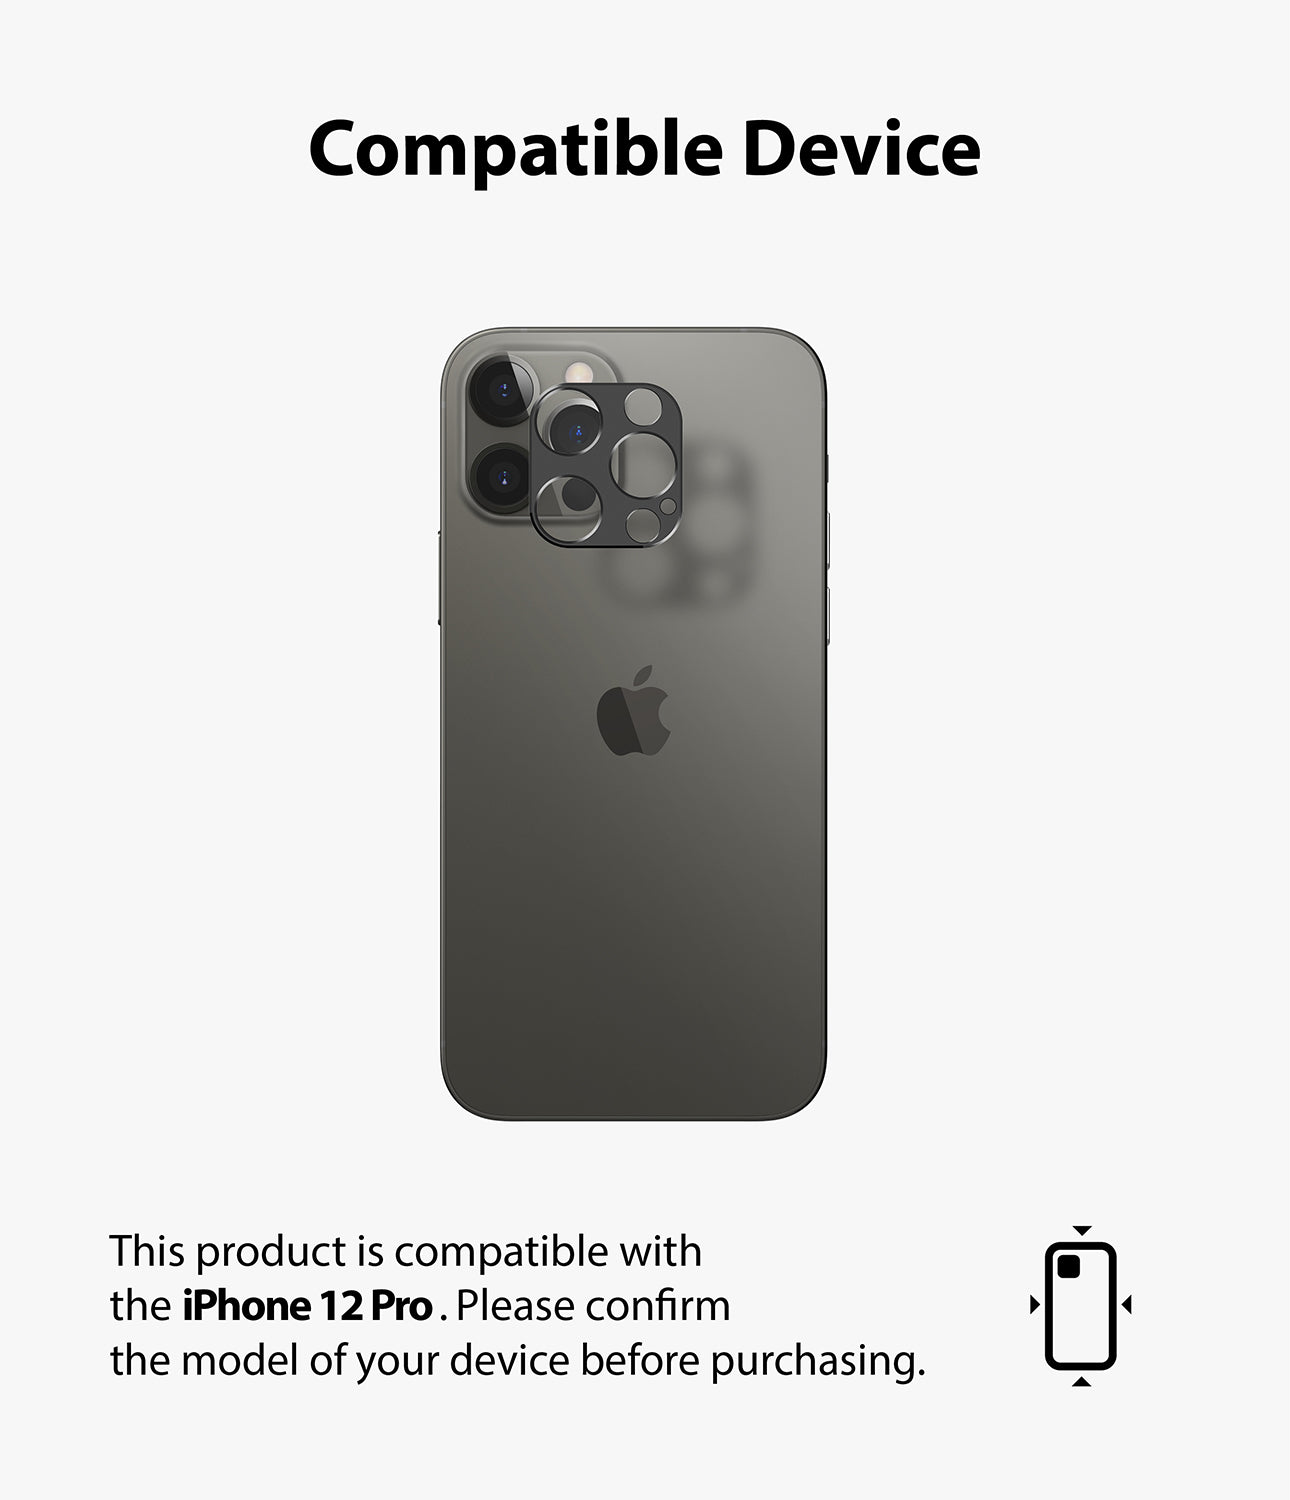 only compatible with iphone 12 pro